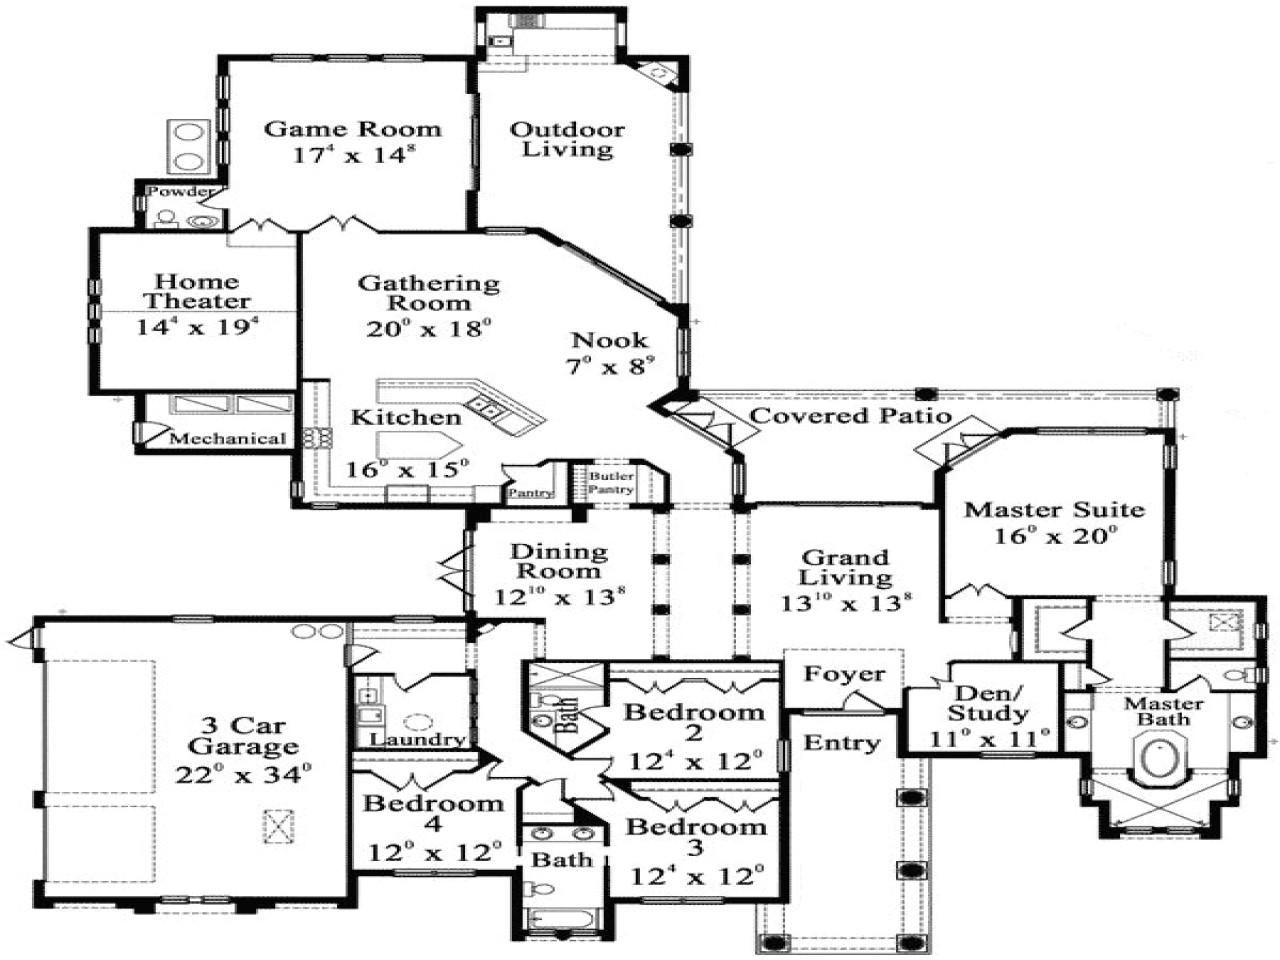 0343884532021574 one story luxury floor plans luxury hardwood flooring